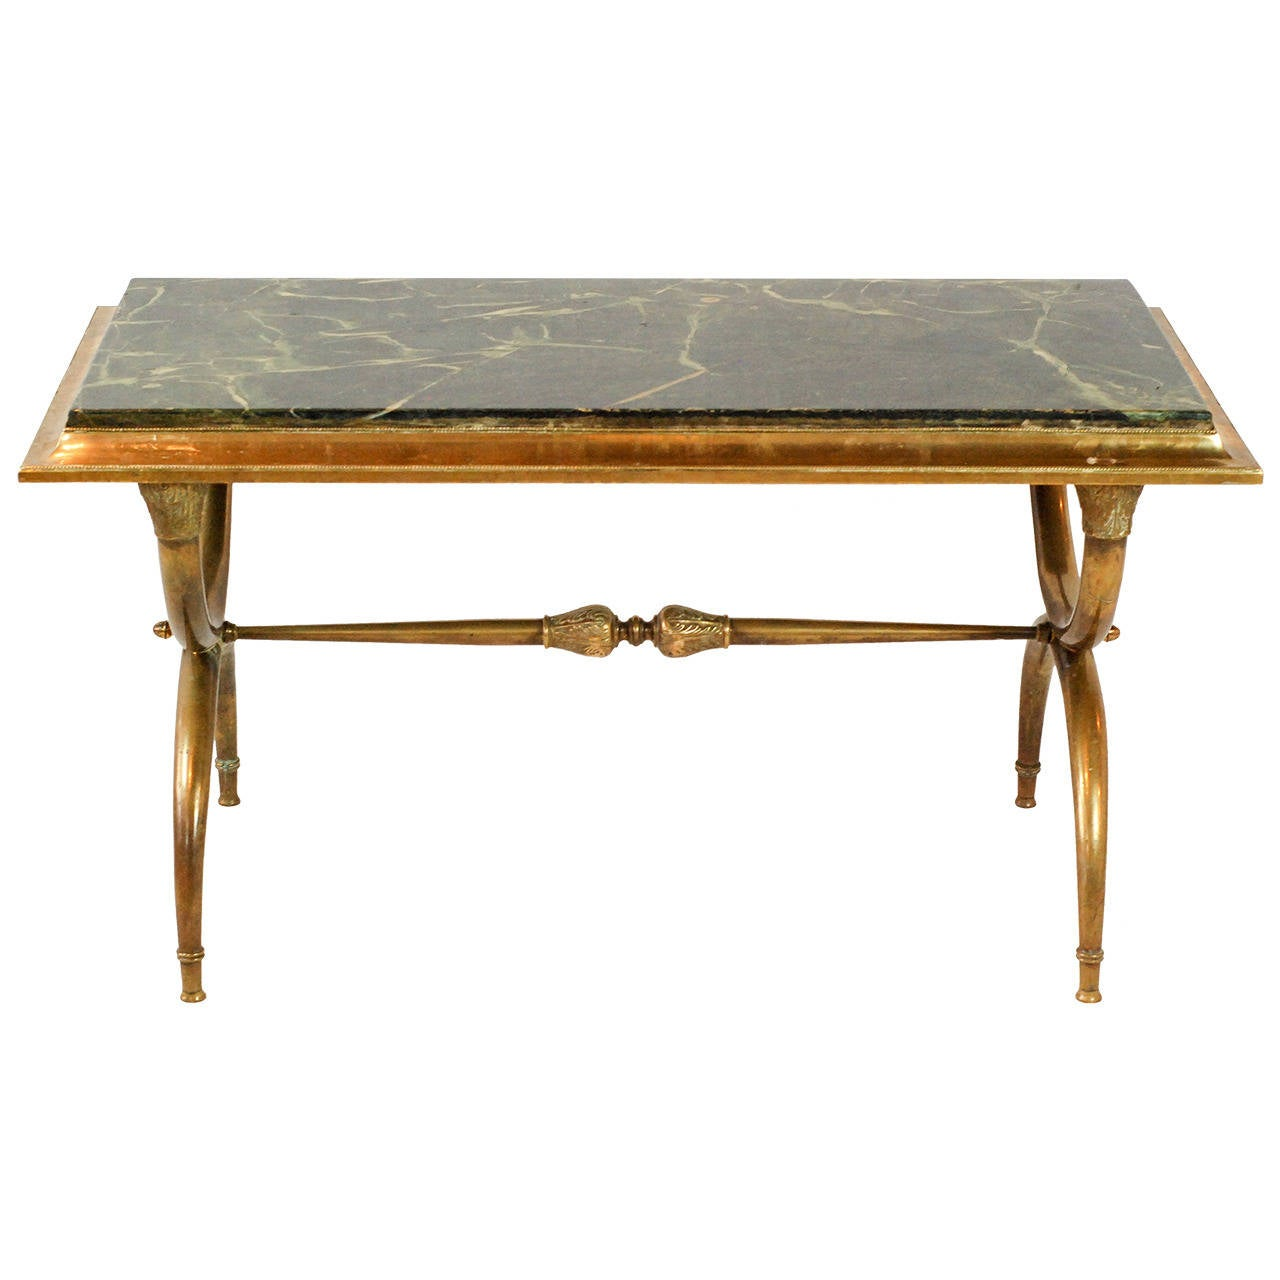 Marble Coffee Table Houston: Brass And Green Marble Coffee Table At 1stdibs